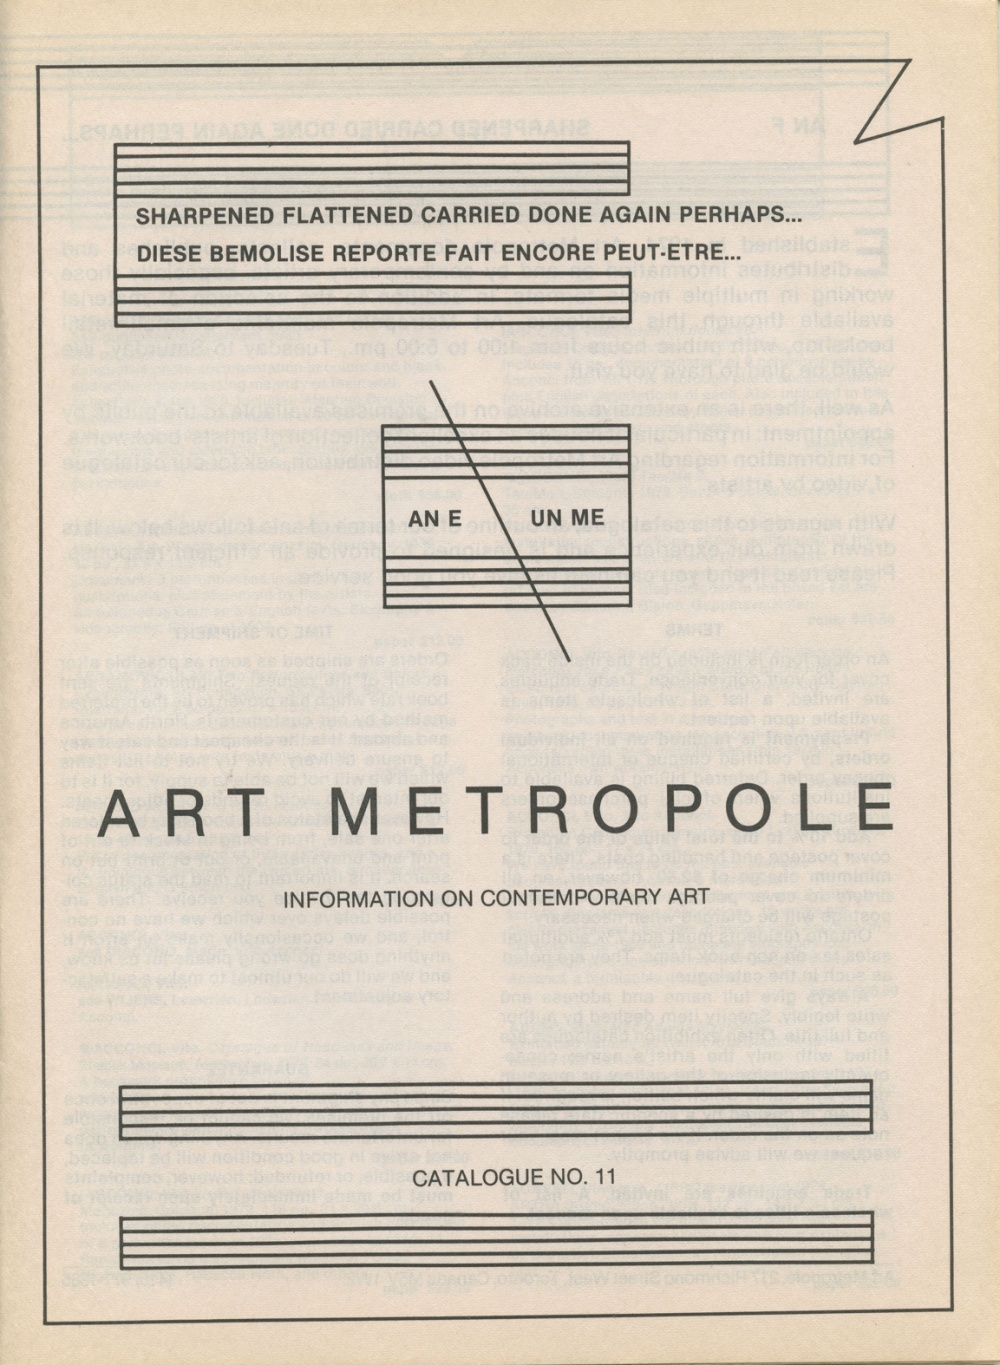 Art Metropole. Information on Contemporary Art. Catalogue No.